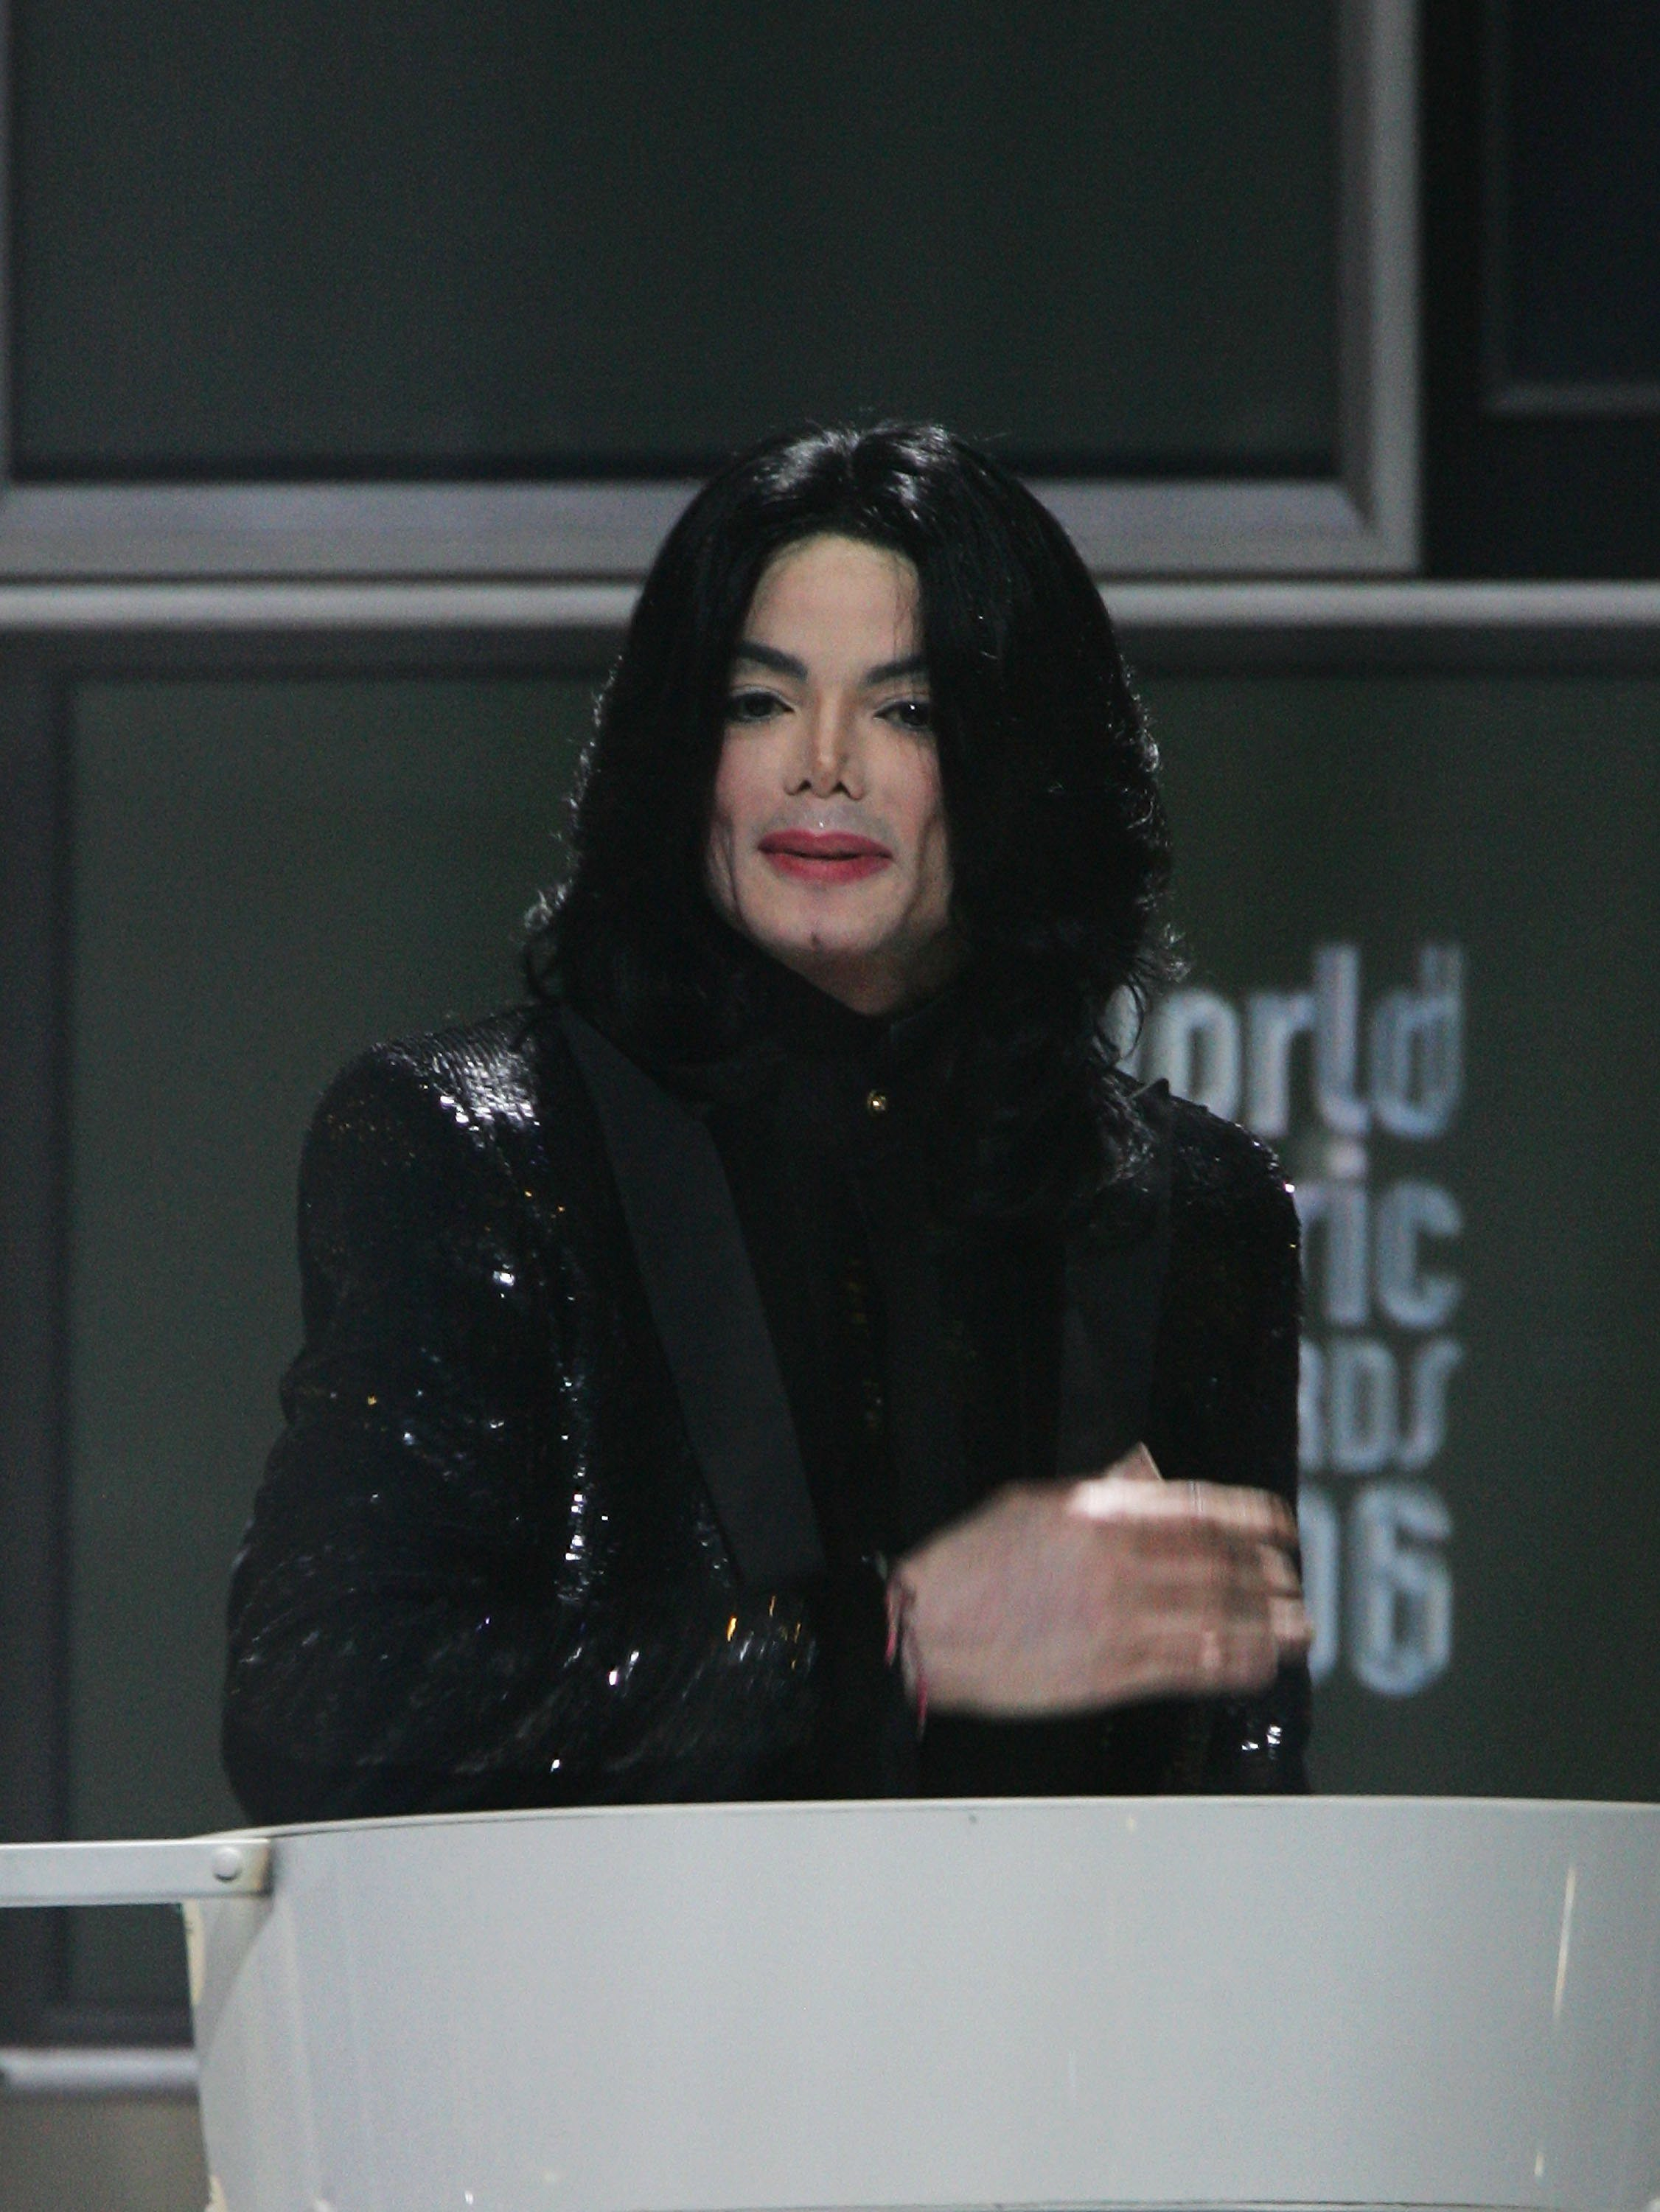 Michael Jackson music will no longer be played